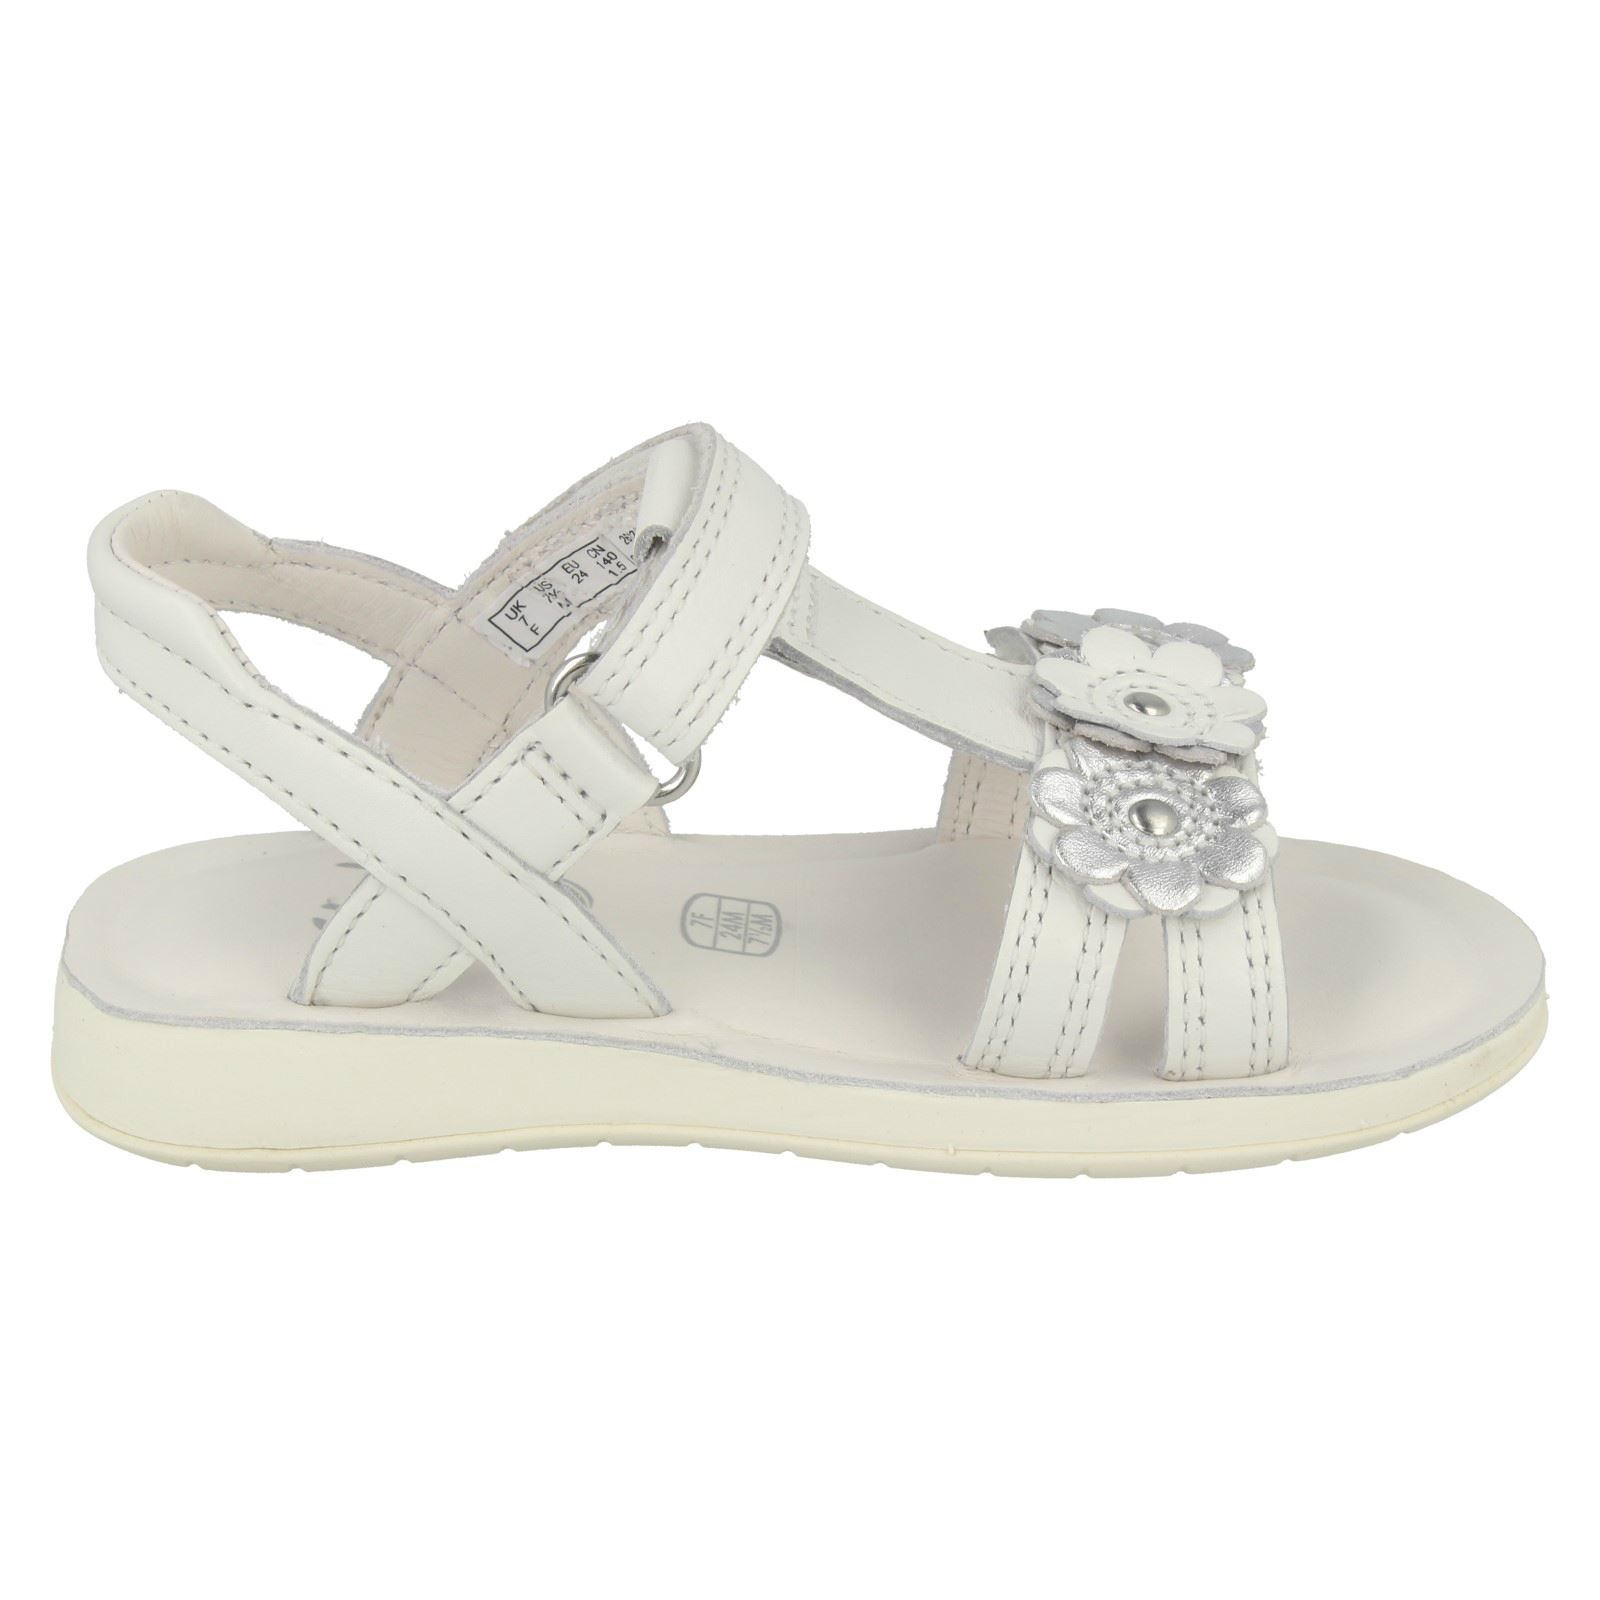 aeb615f3816 Girls Clarks Sea Sally Gladiator Style Sandals With Flower Detail